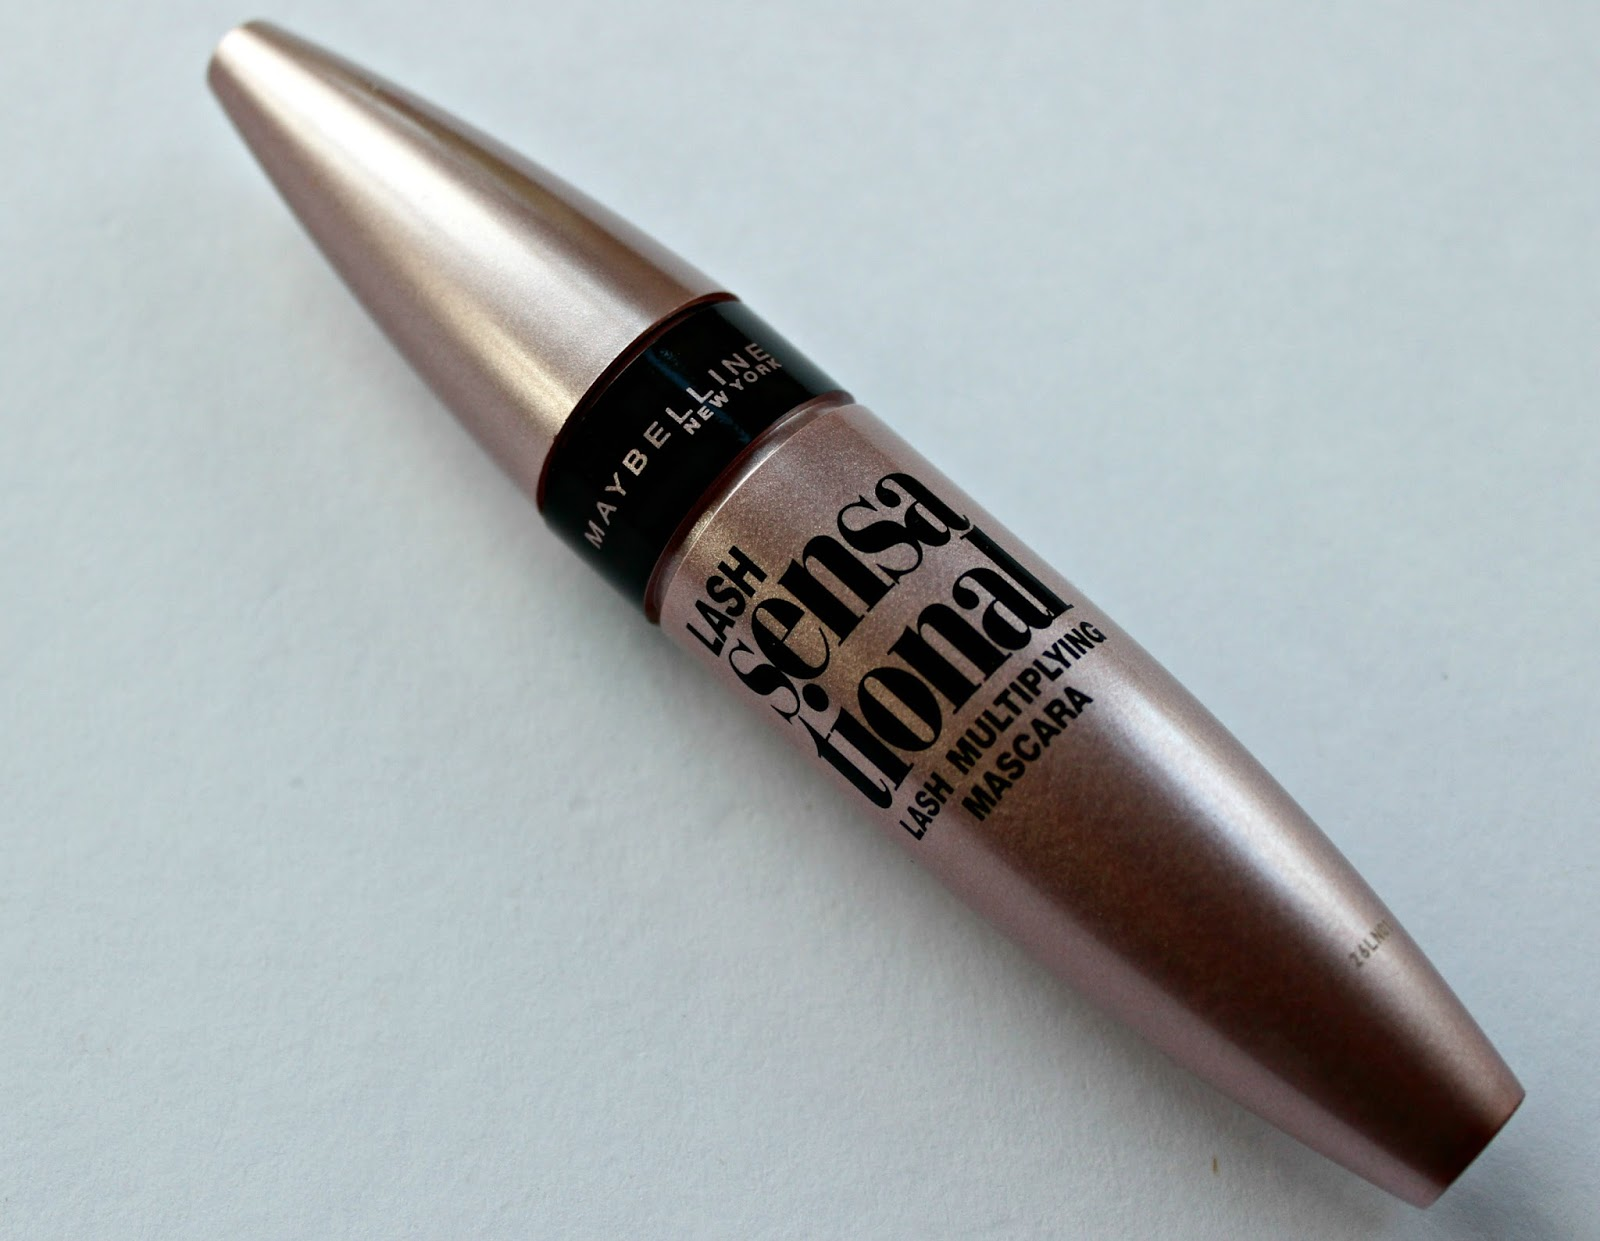 A picture of the Maybelline Lash Sensational Mascara